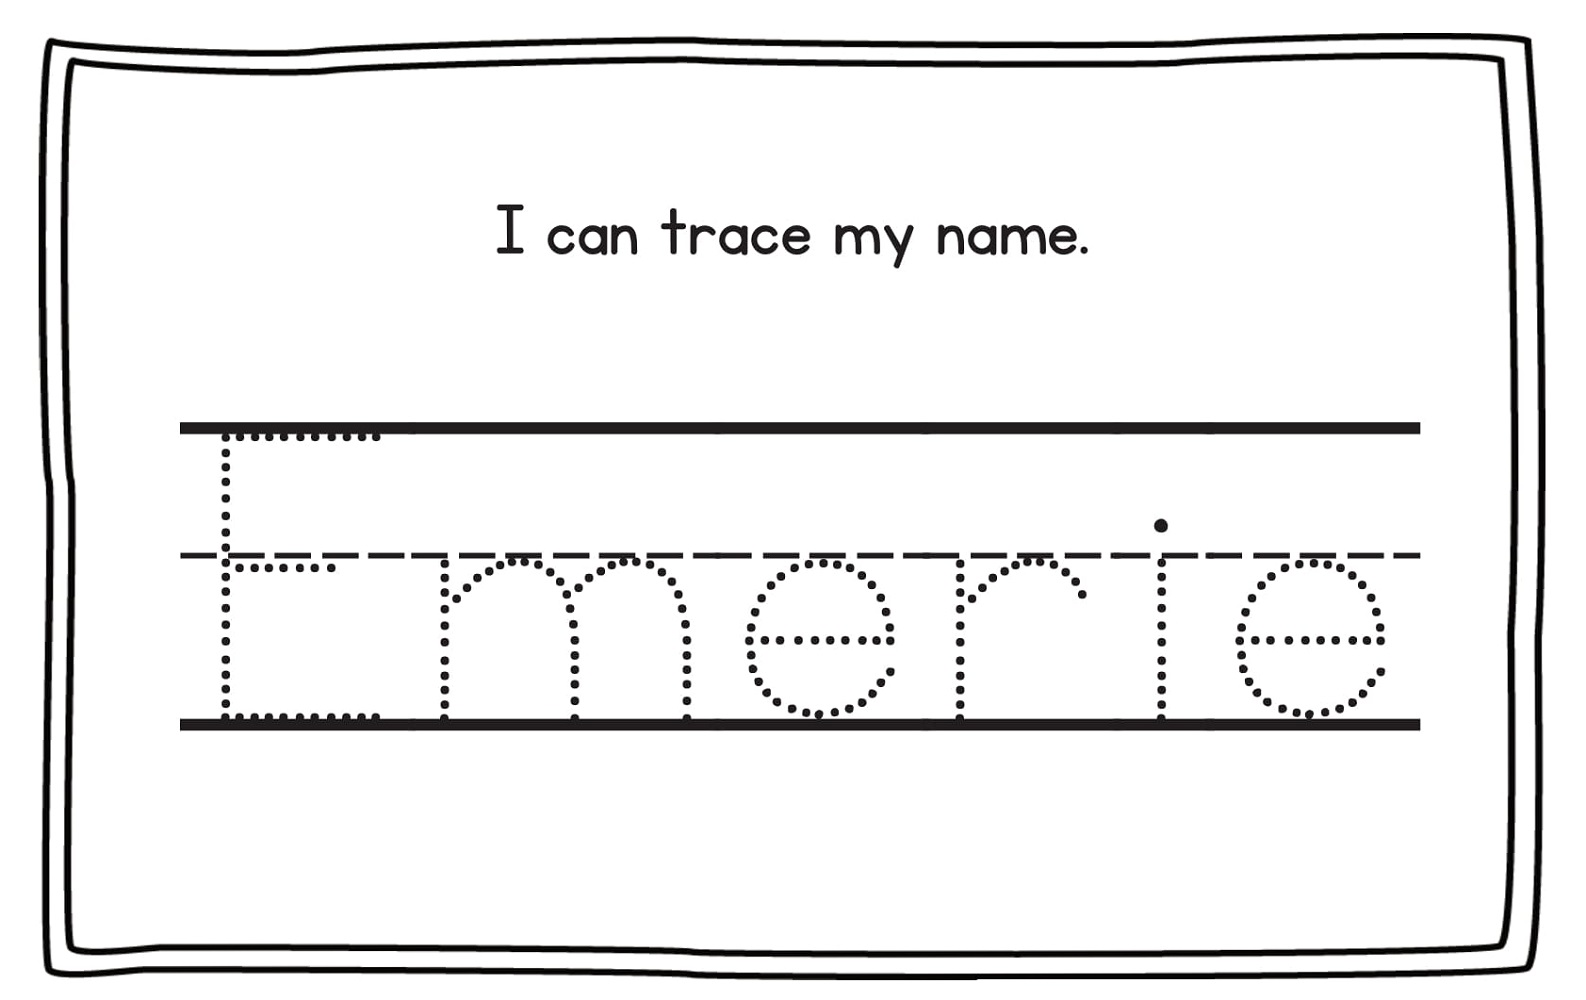 traceable name sheets for practice